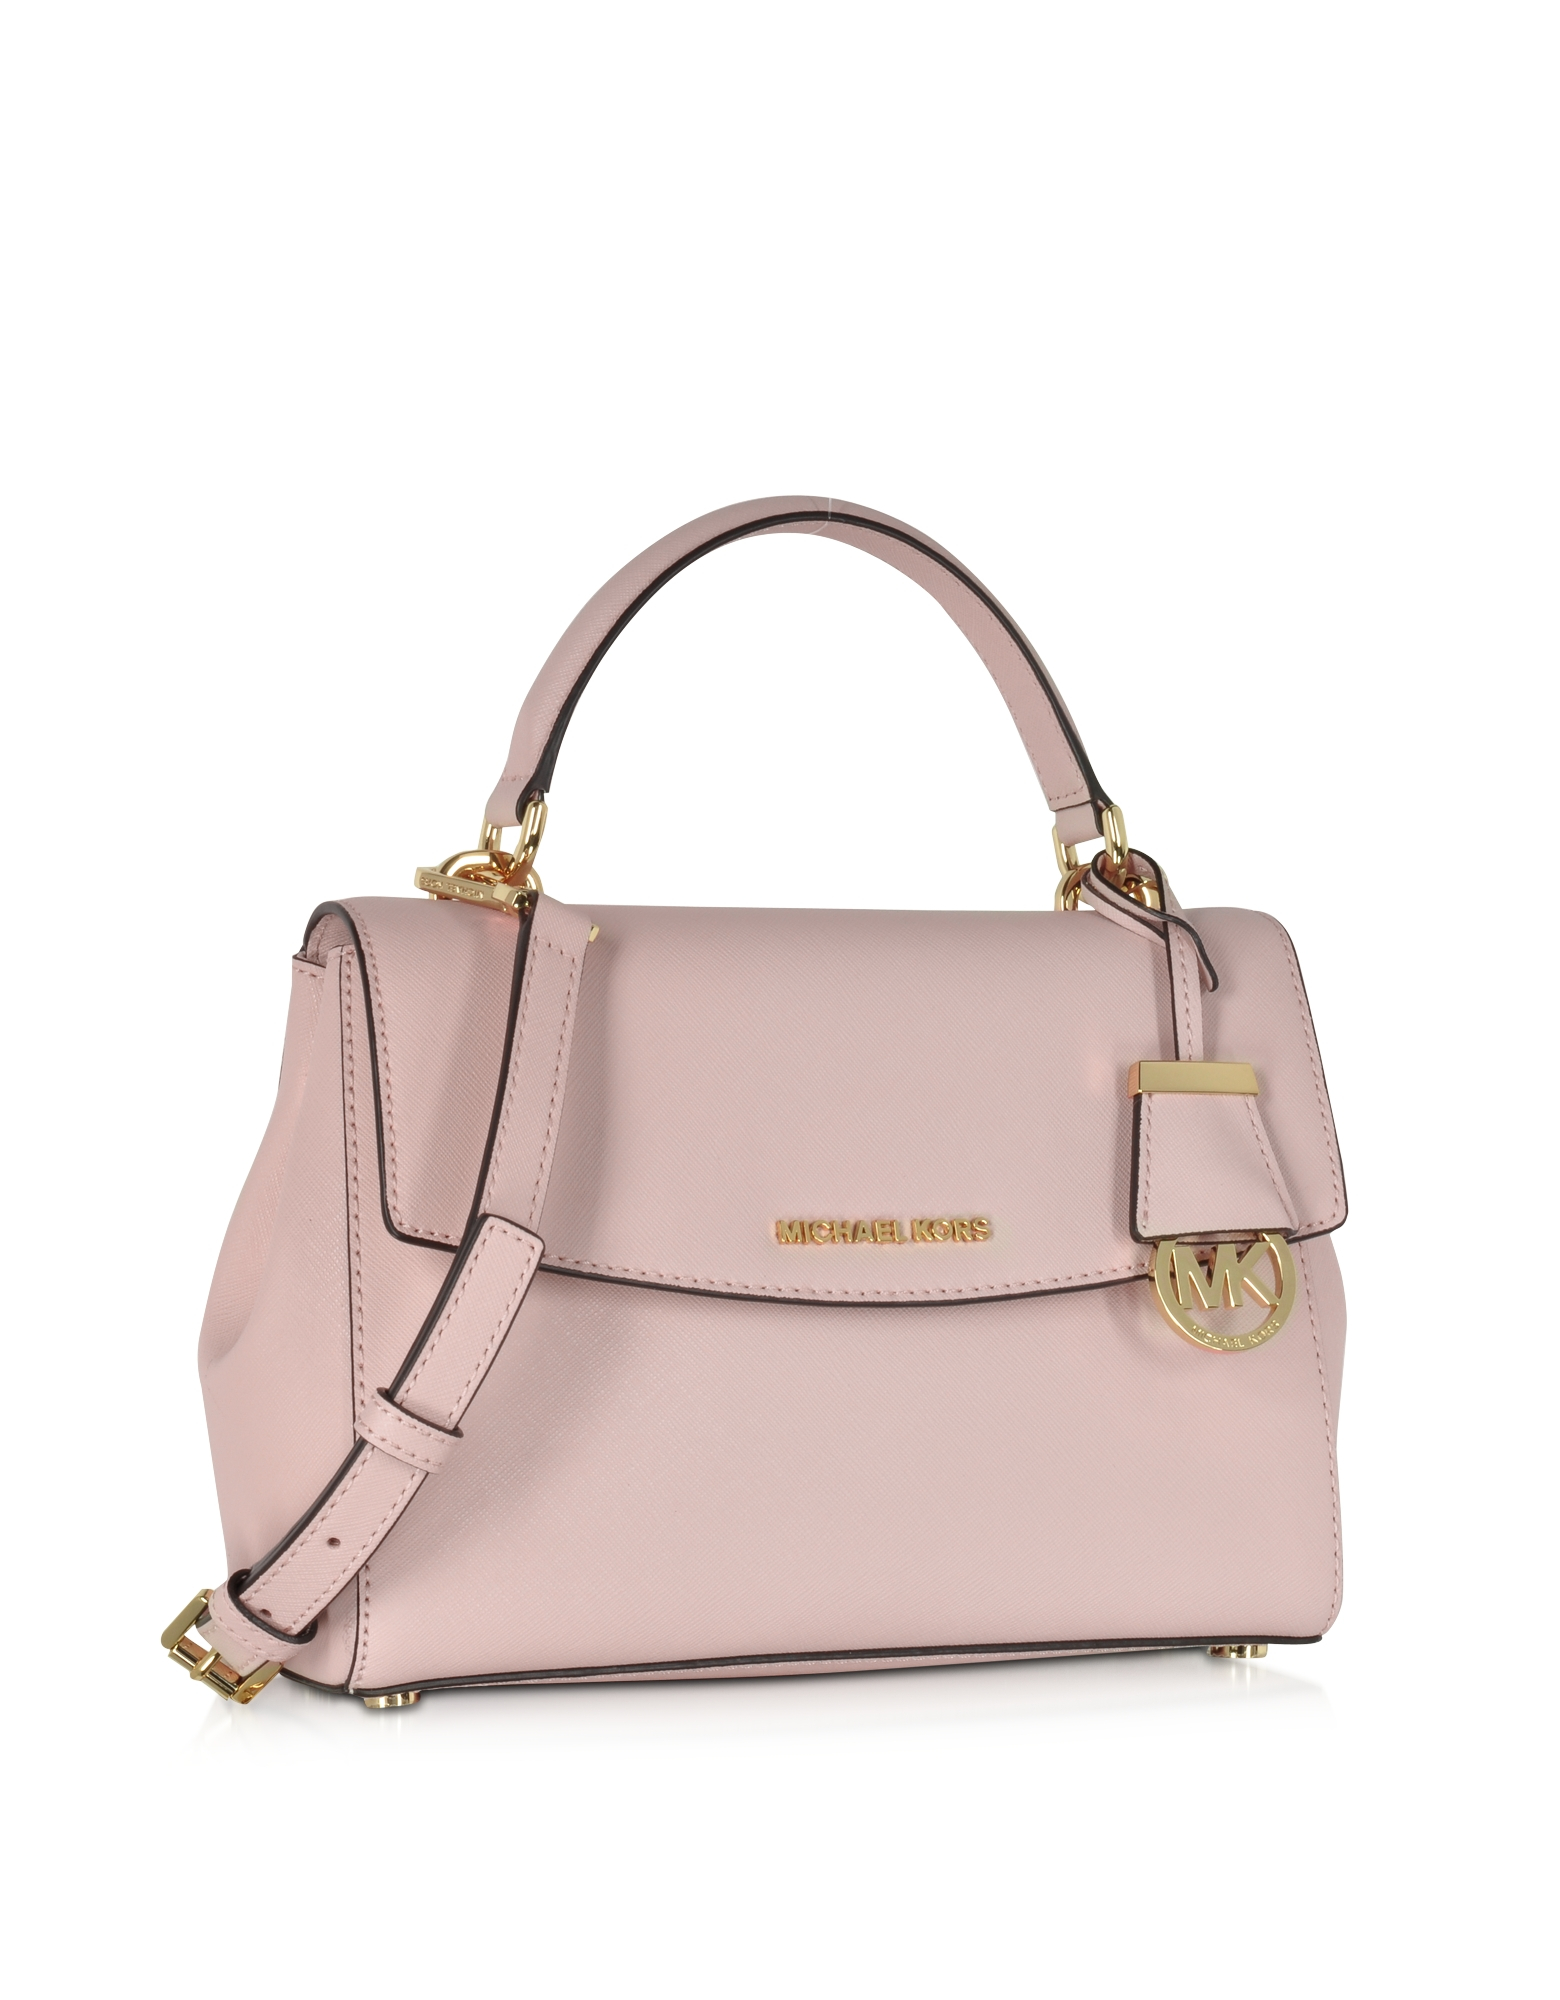 9b12bb26ab41 Michael Kors Ava Small Blossom Pink Saffiano Leather Satchel Bag in ...